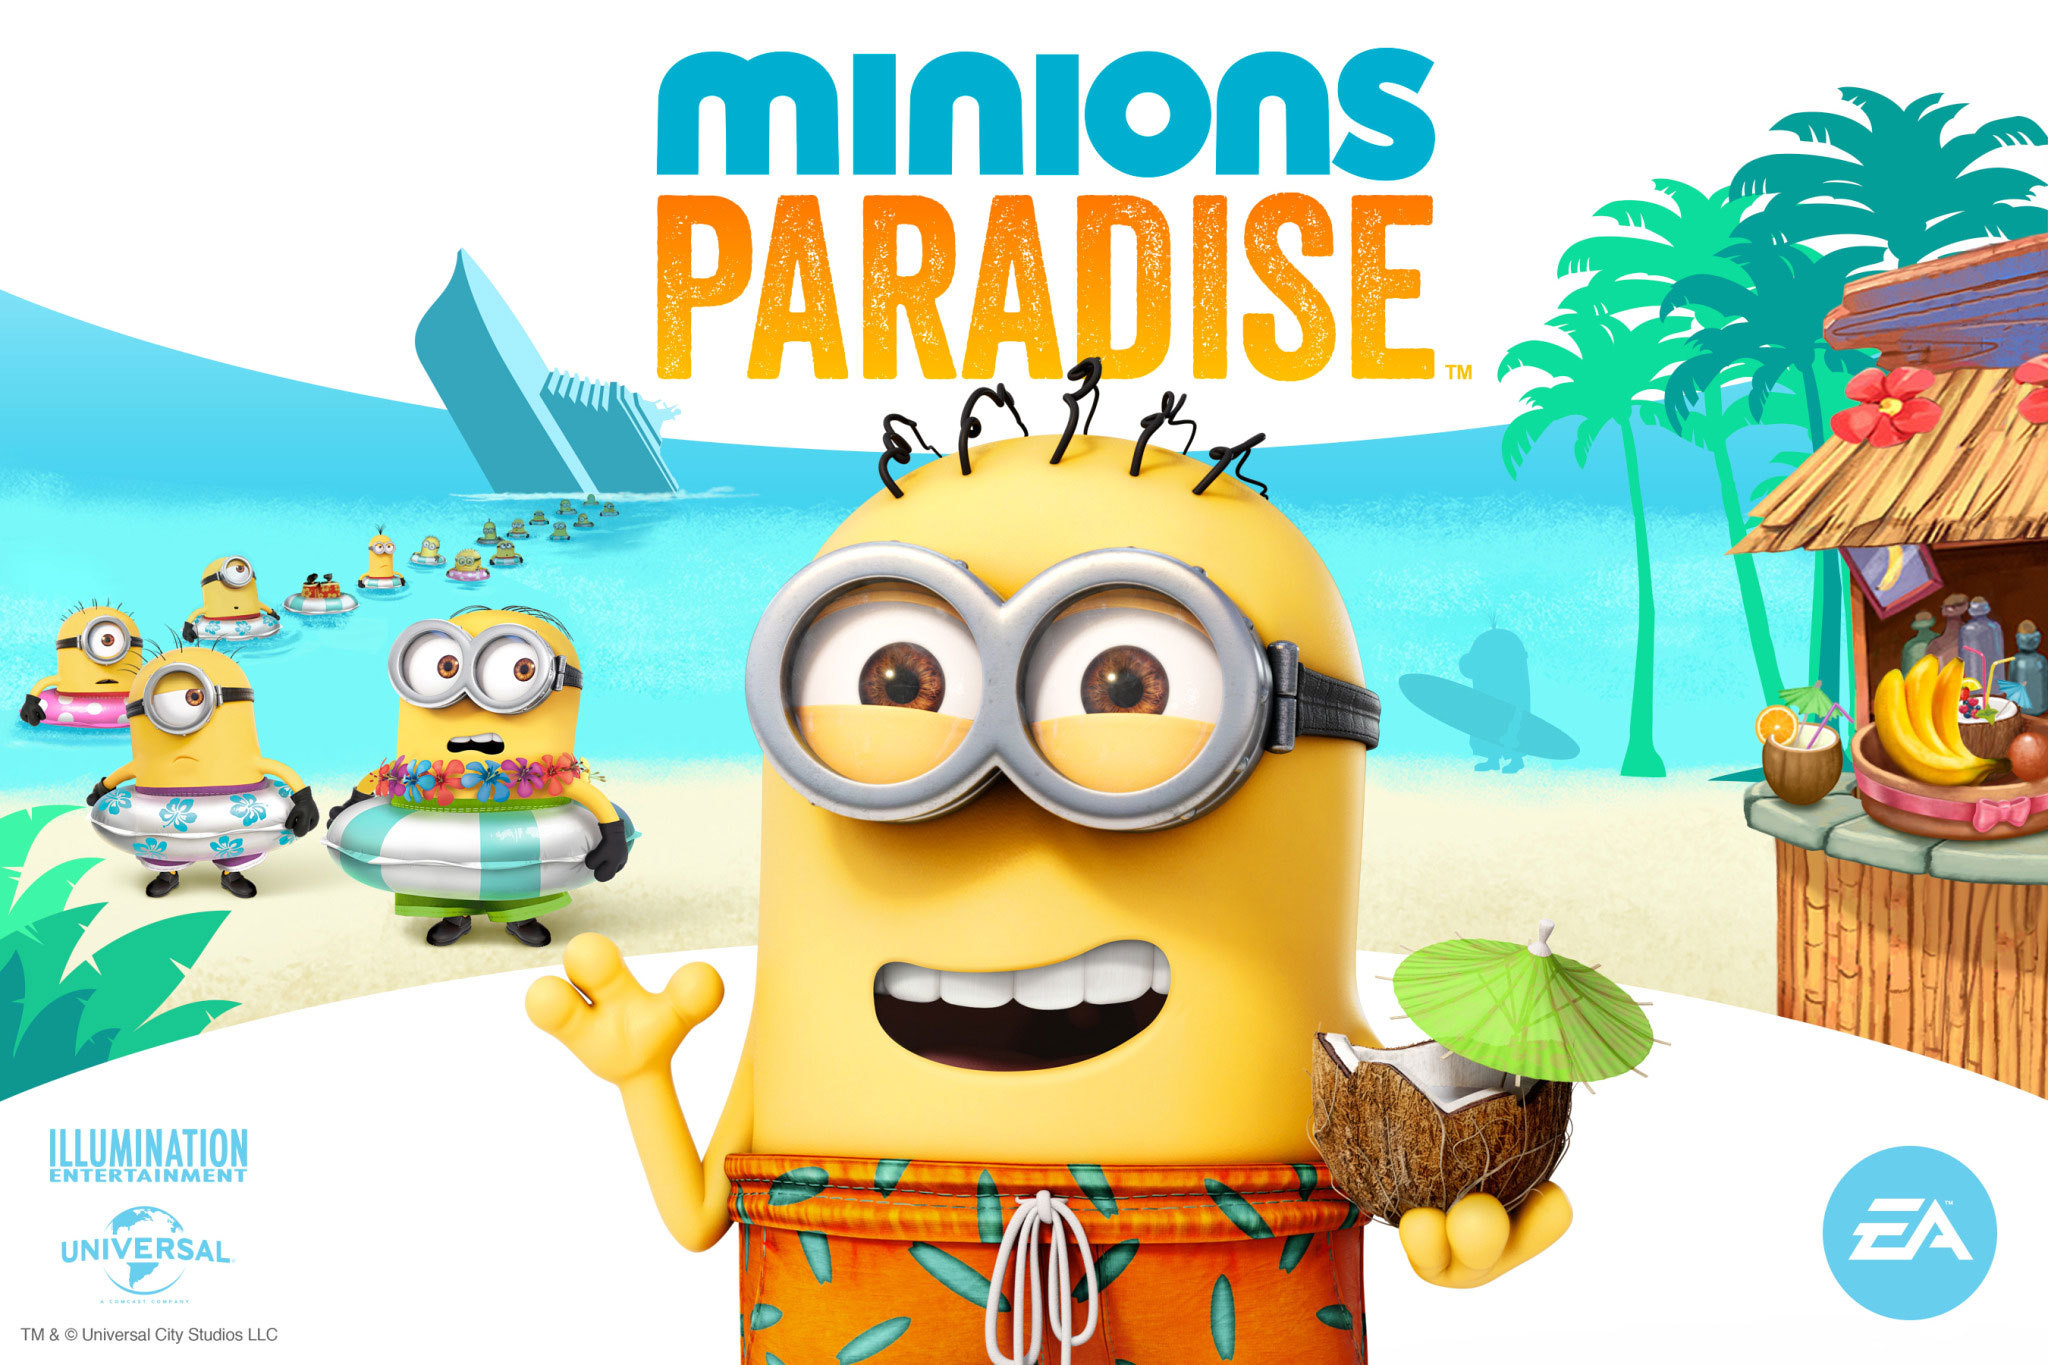 Minions Party Party With The Minions In Minions Paradise An All New Game